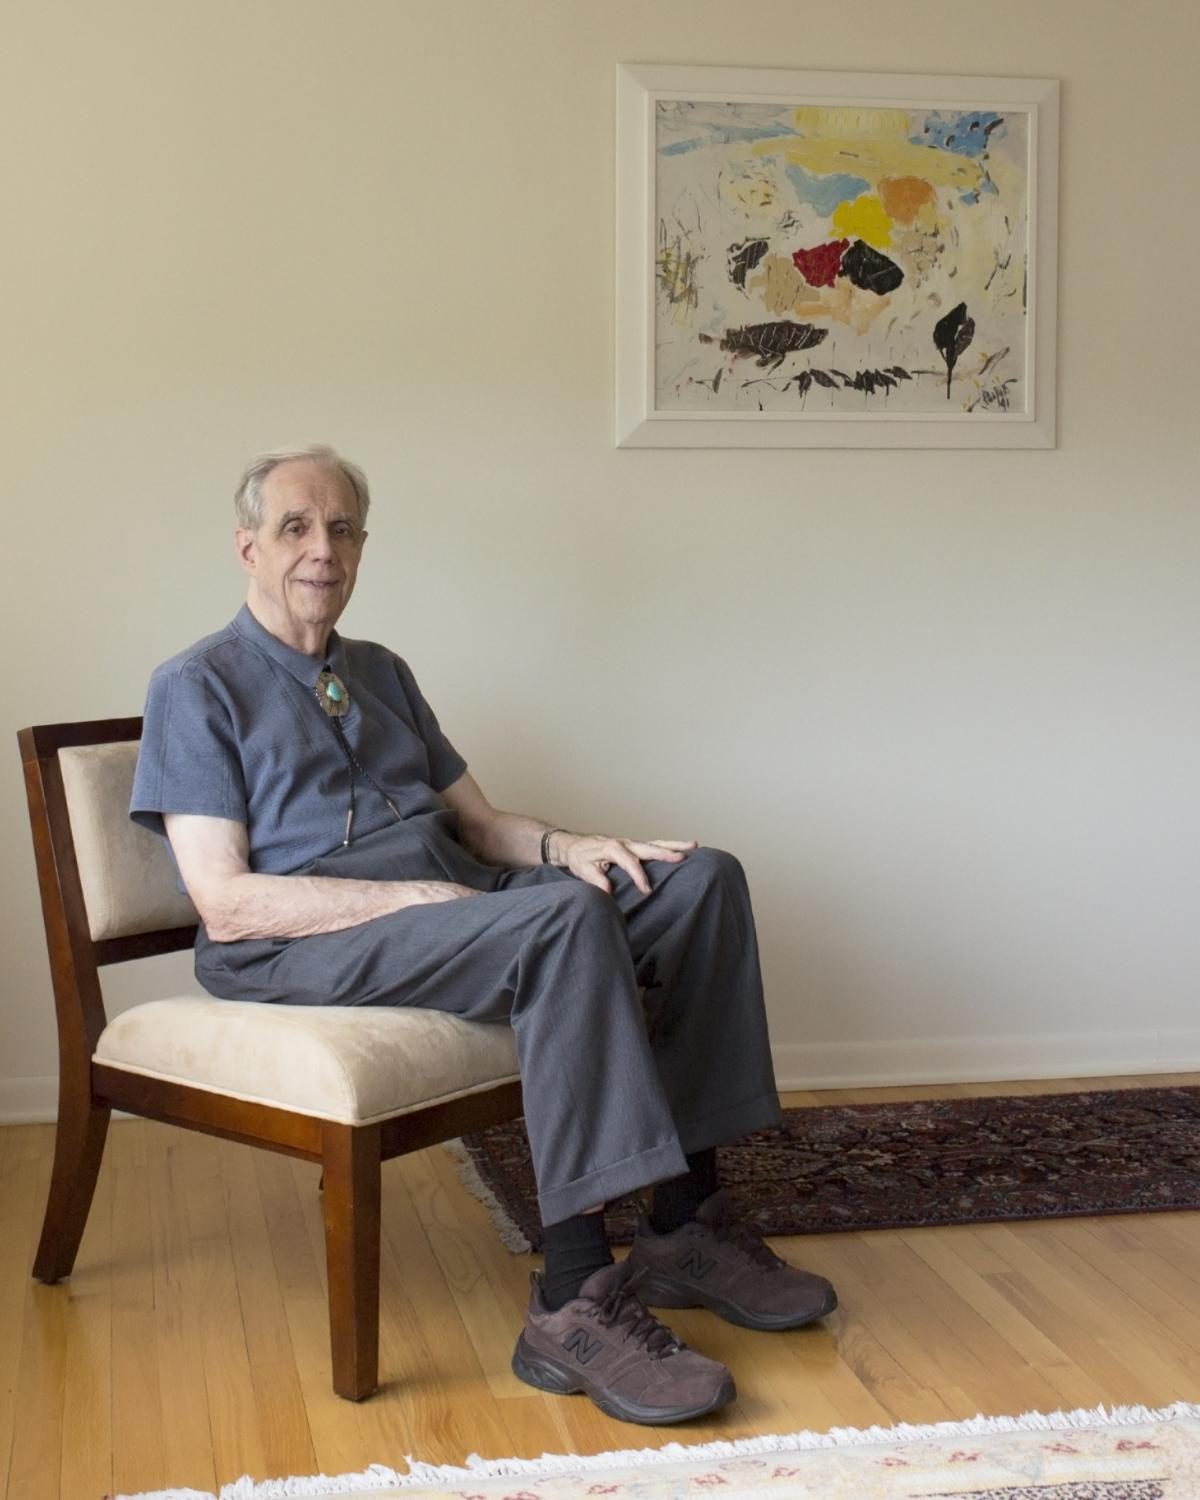 Krannert Art Museum donor and art collector Iver M. Nelson, Jr. at home, 2018.